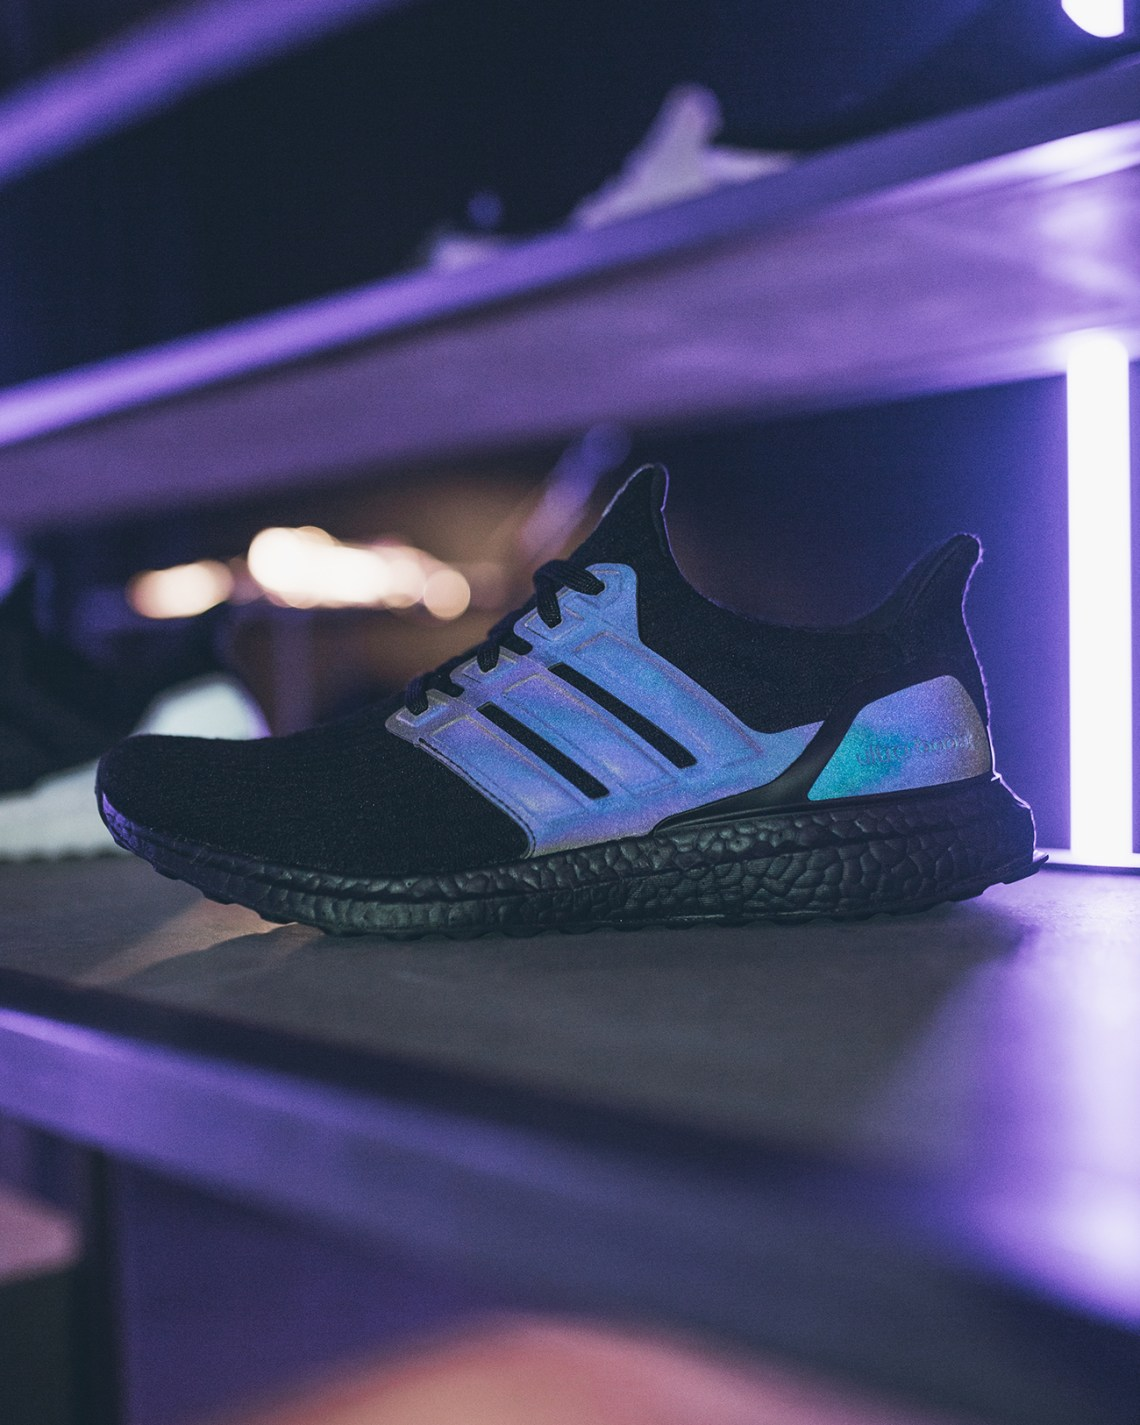 869bf93054976 ... the mi-adidas XENO UltraBoost design party. If you re looking to earn  an opportunity to design your own pair